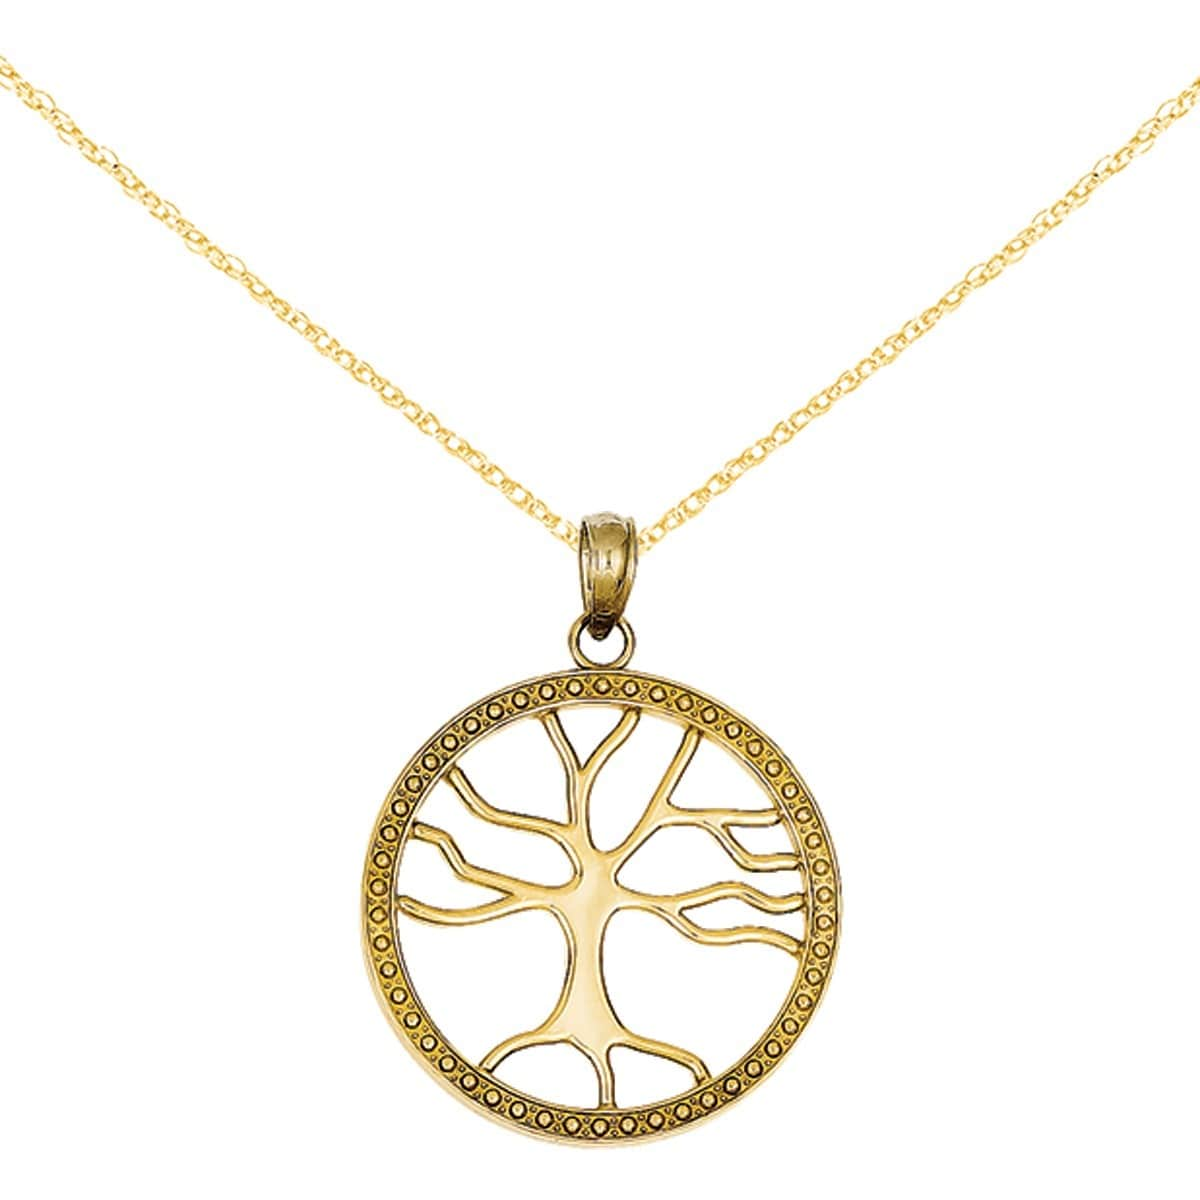 Tree of Life 18-karat mother-of-pearl 20mm necklace with spring ring clasp. UMJOJTV